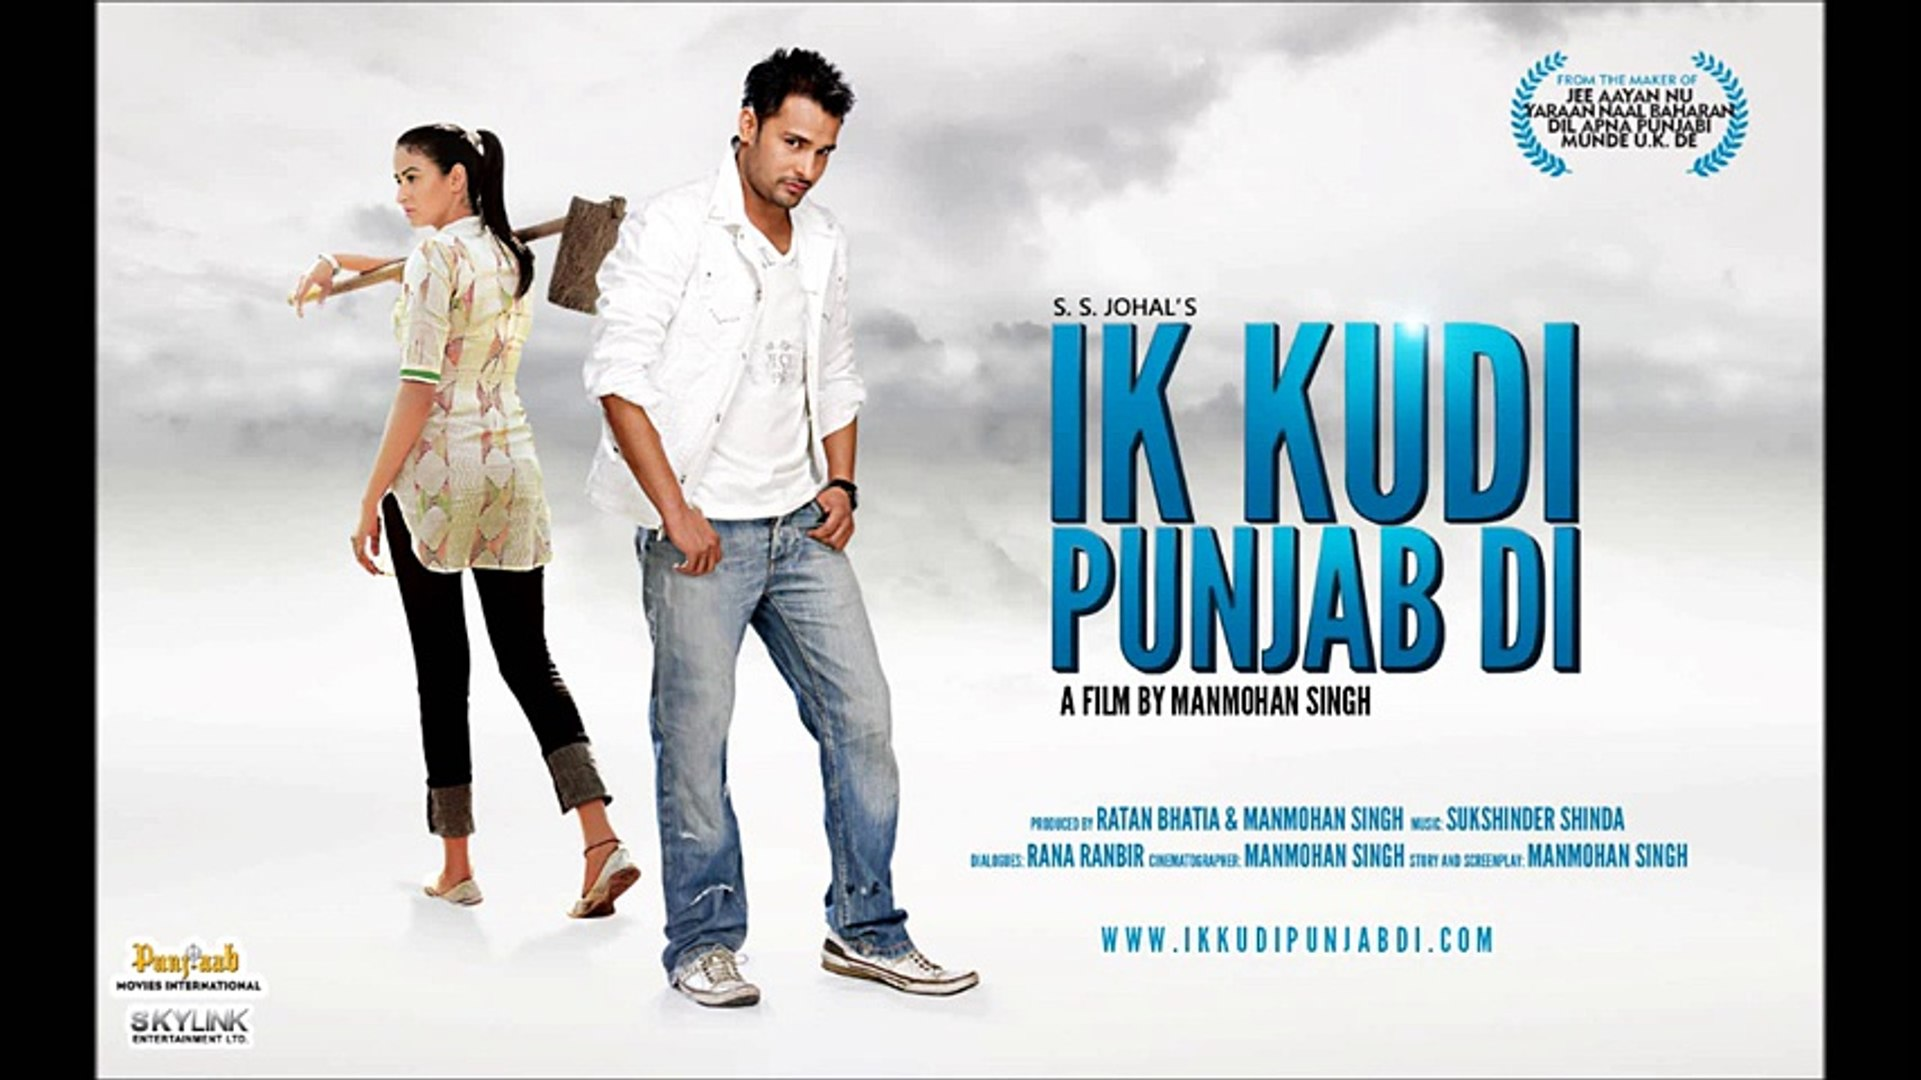 jithe gal ishq di challe amrinder gill song